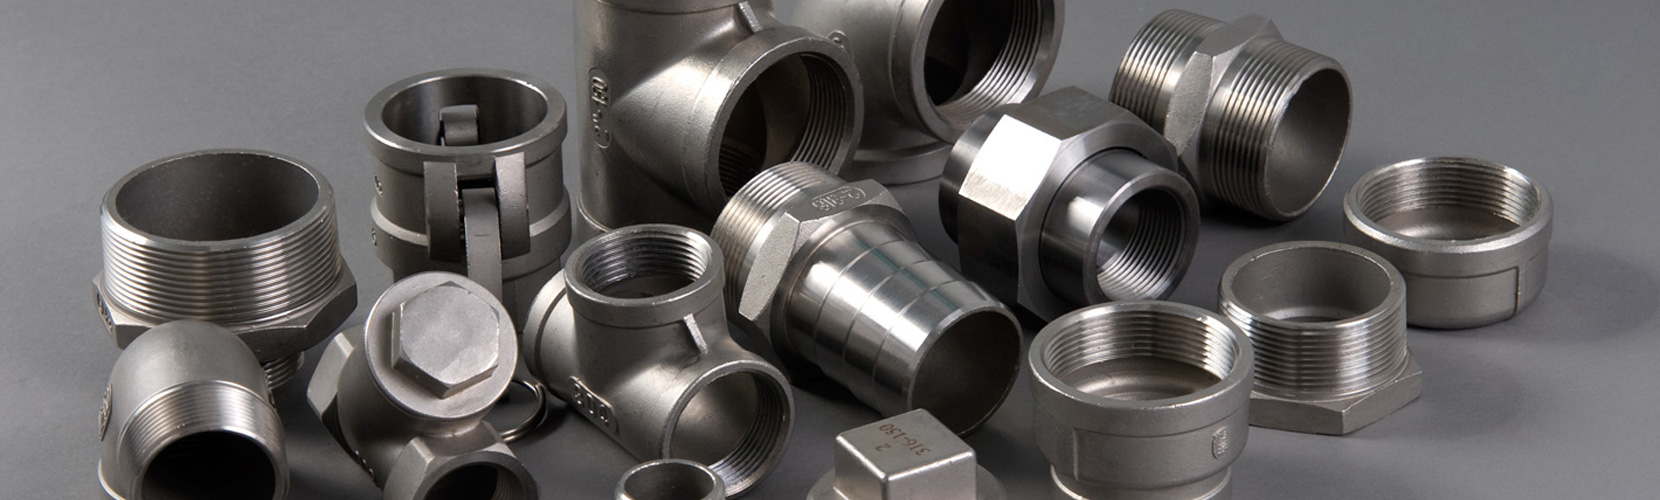 Stainless Steel Forged Fittings Exporter in Nigeria